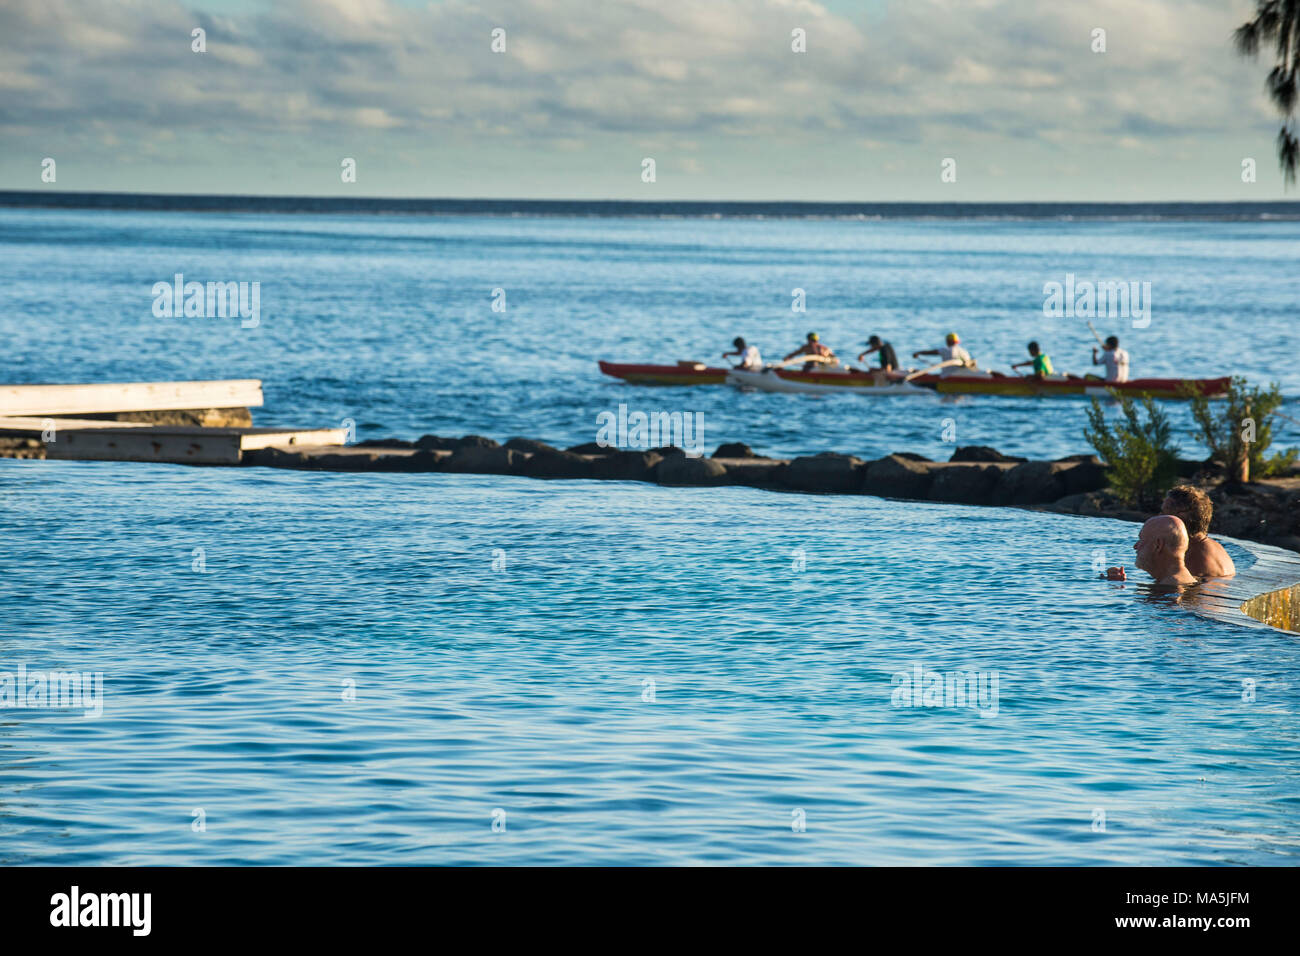 Kayakers working out at sunset, Papeete, Tahiti, French Polynesia - Stock Image